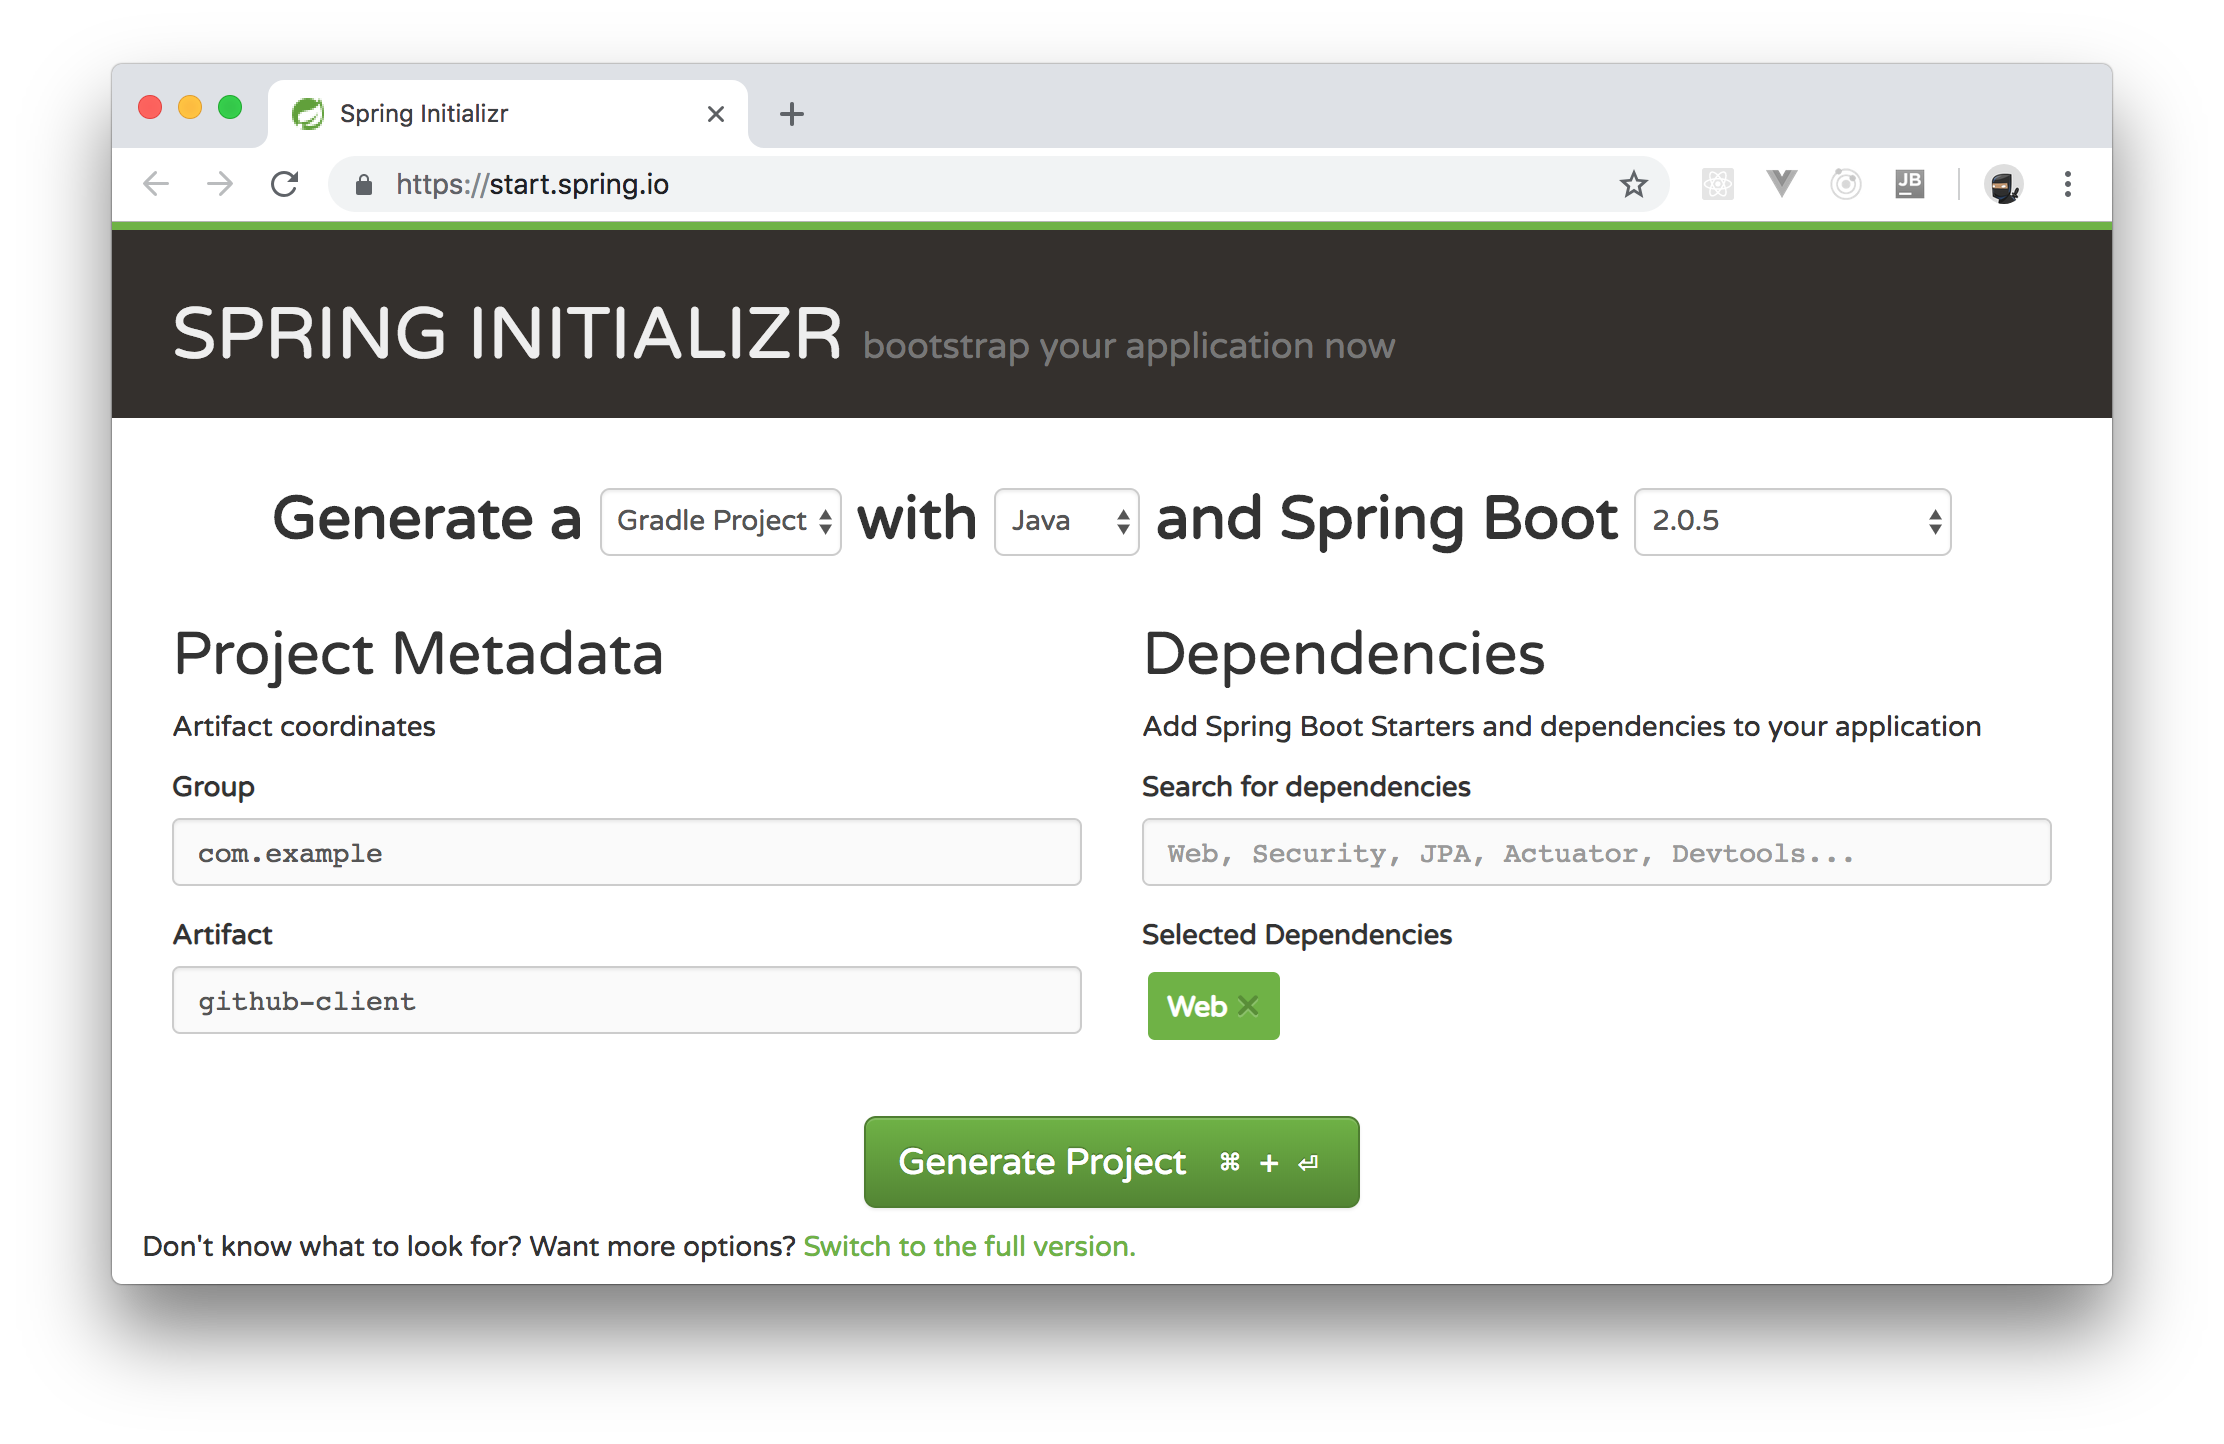 Generating a new JAVA Spring Boot project online